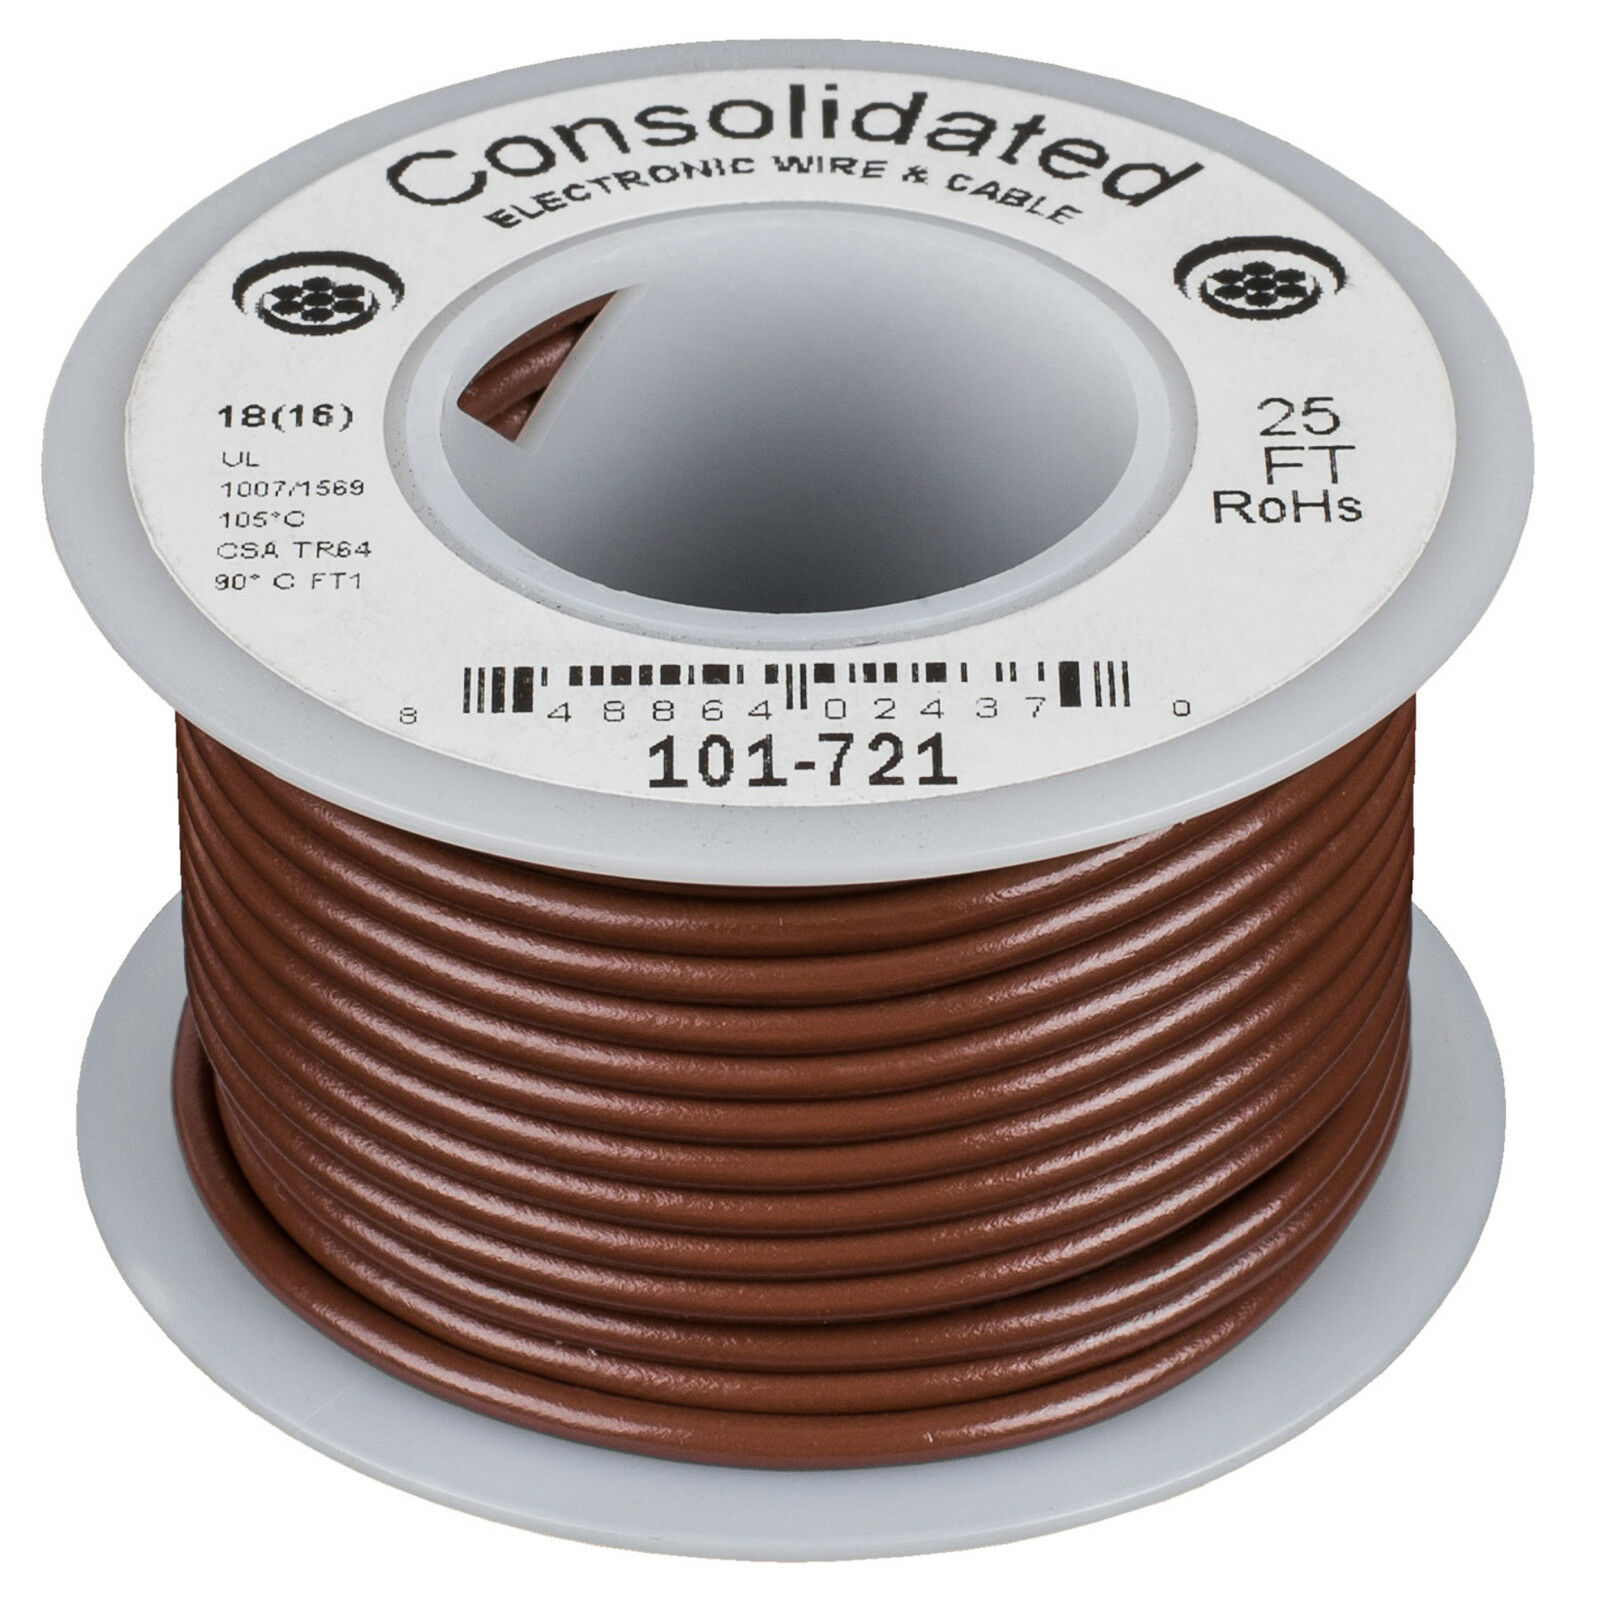 Enchanting Consolidated Wire And Cable Pictures - Wiring Diagram ...